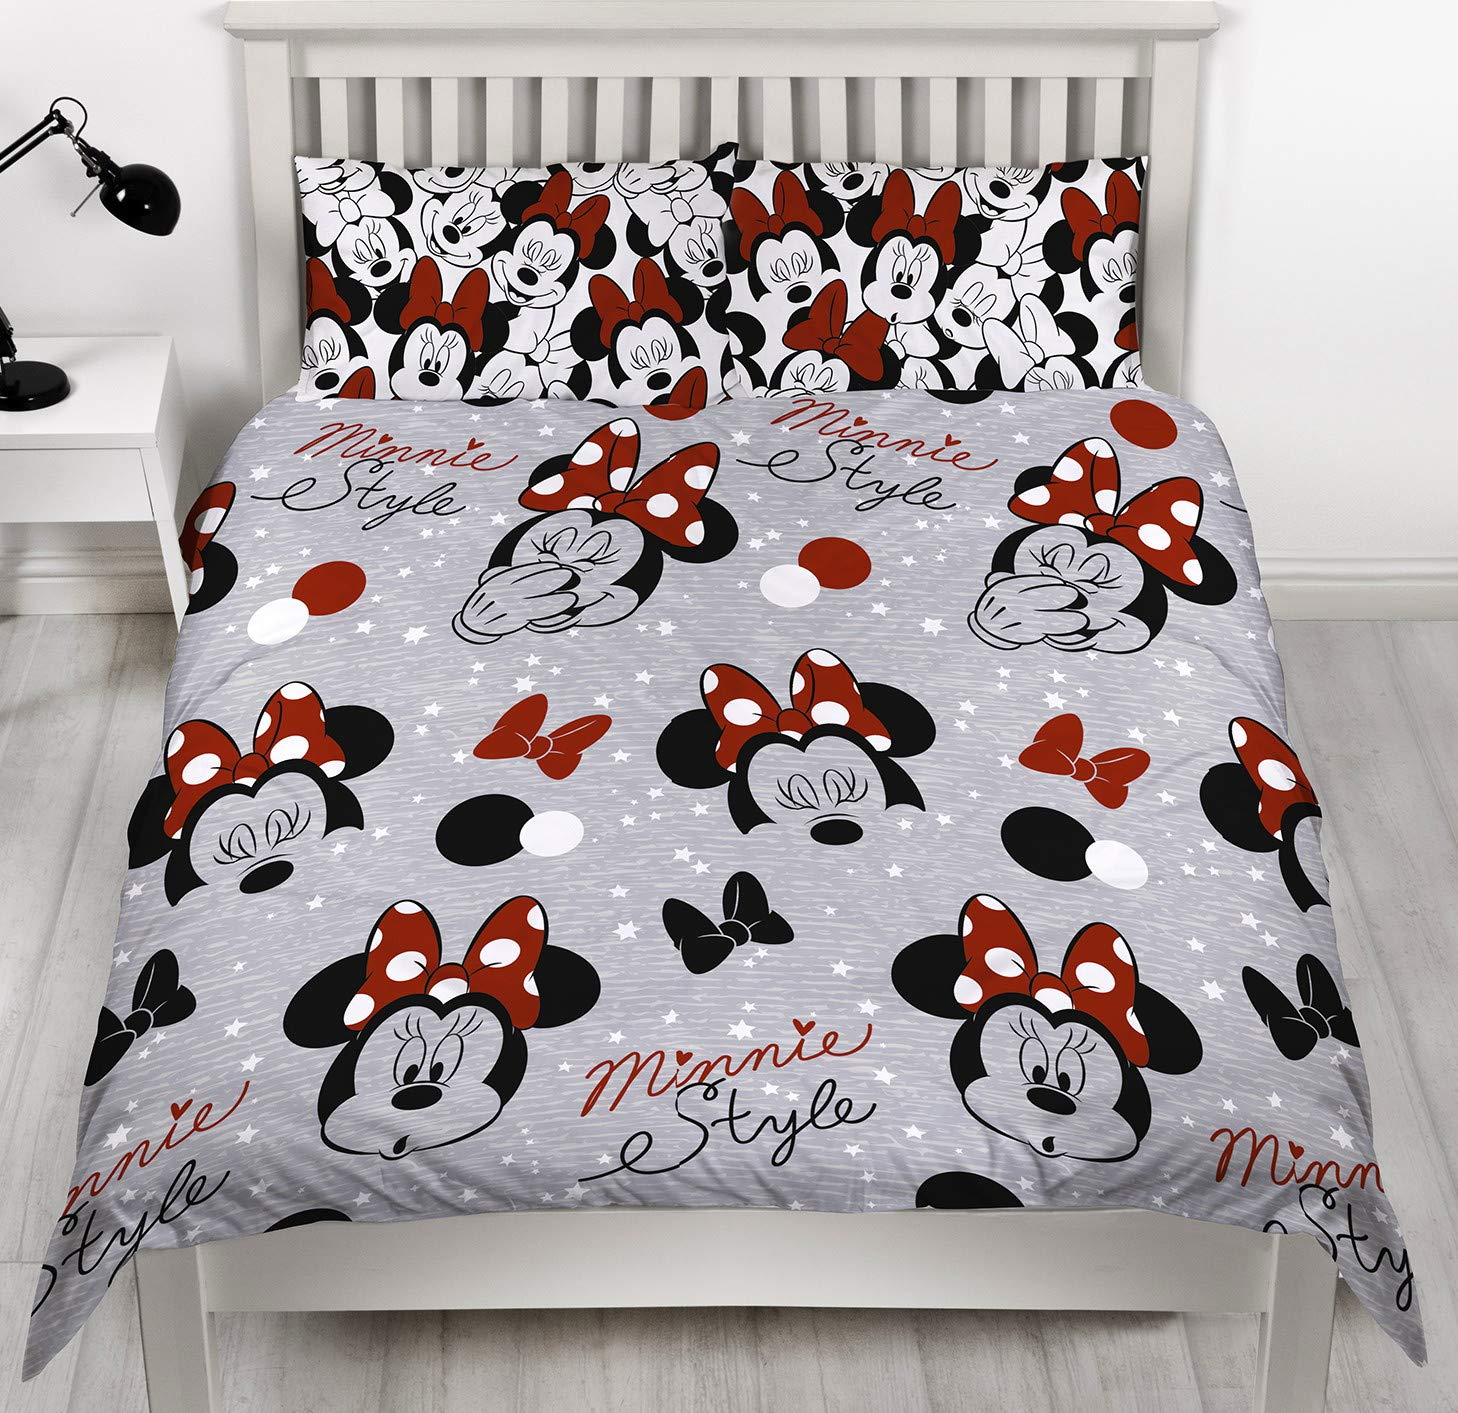 Disney Minnie Mouse Grey Single Duvet Cover | Reversible Cute Two Sided Design | Kids Bedding Set Includes Matching Pillow Case Character World DMNCUTDS002UK1